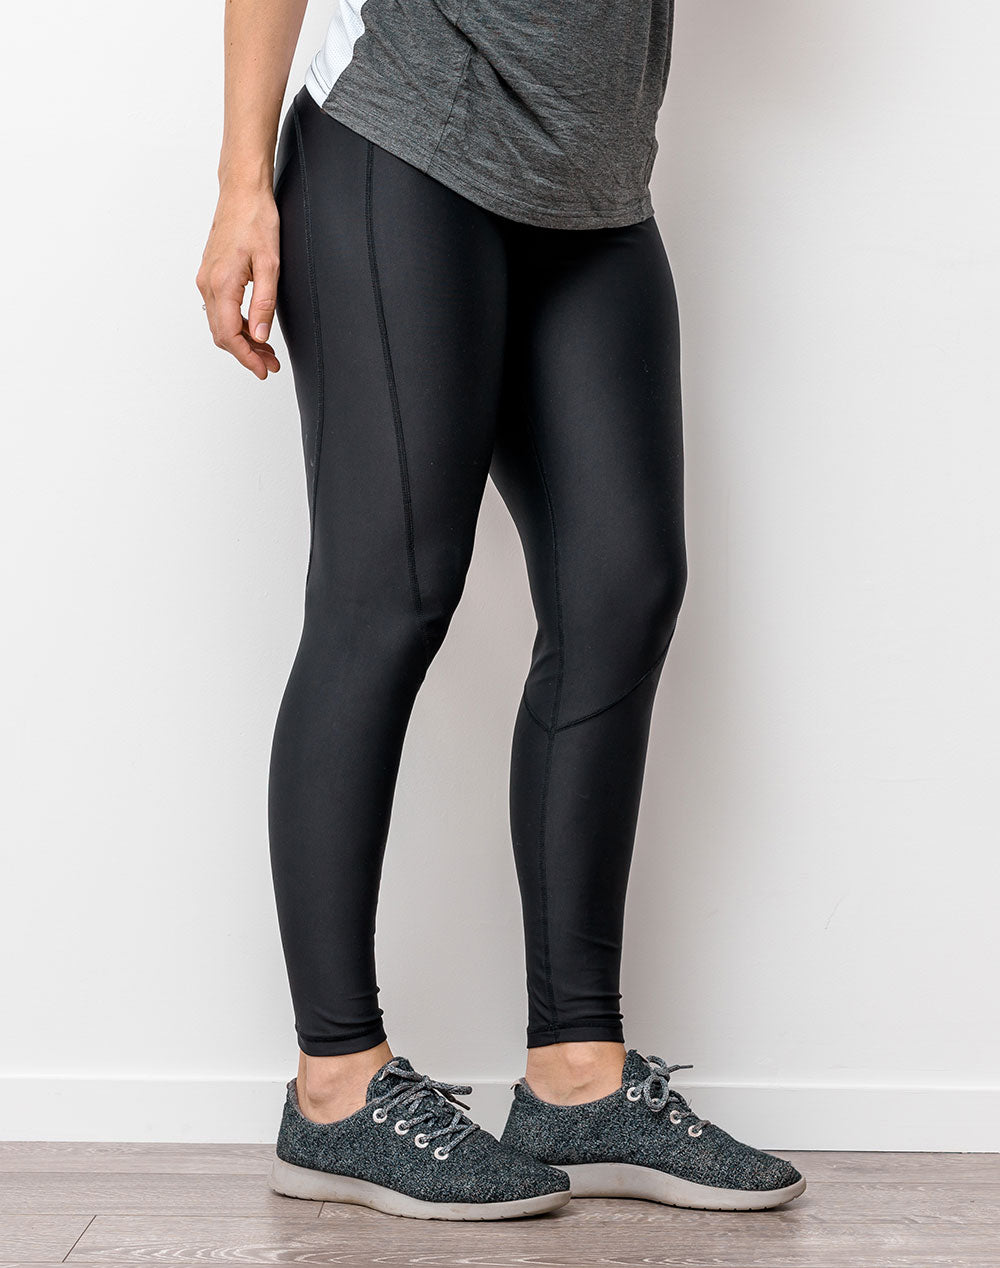 active mom wearing black full length maternity leggings to yoga